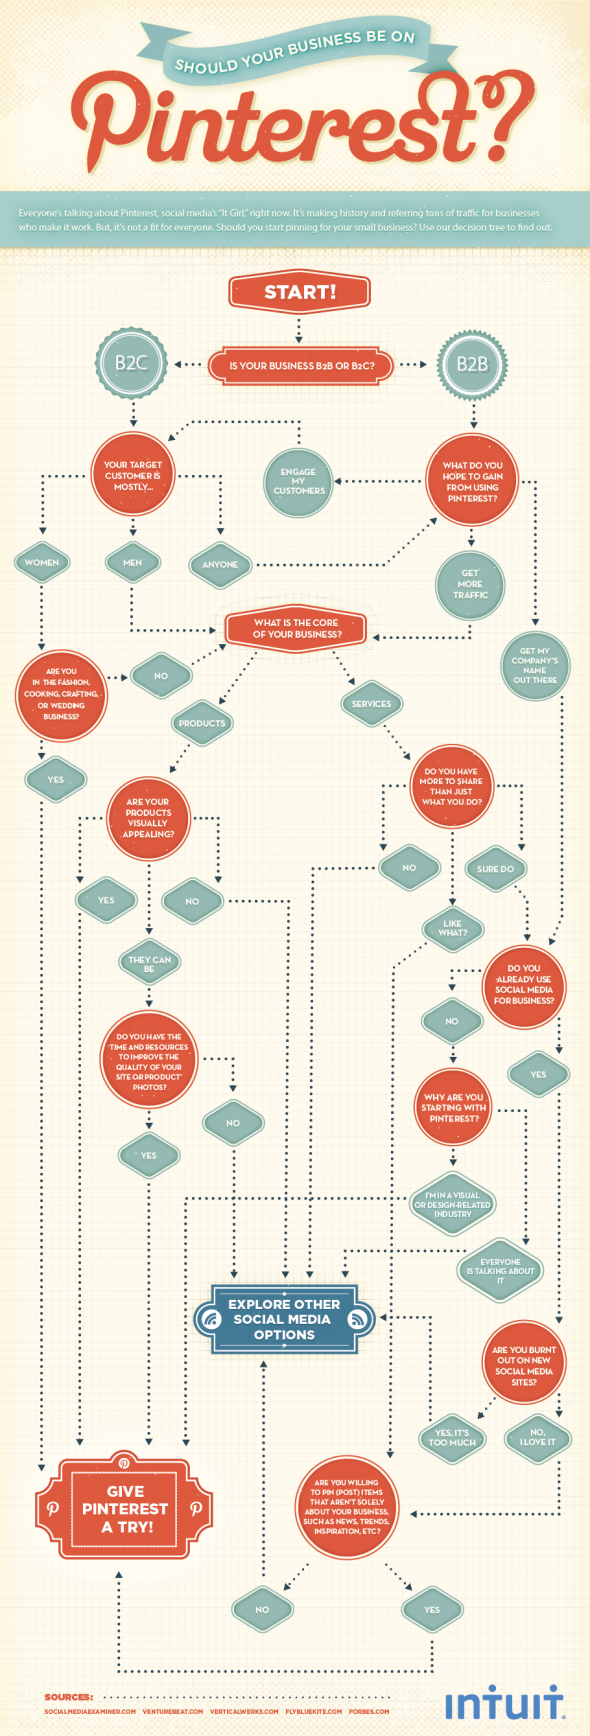 Pinterest Flowchart - Stikky Media